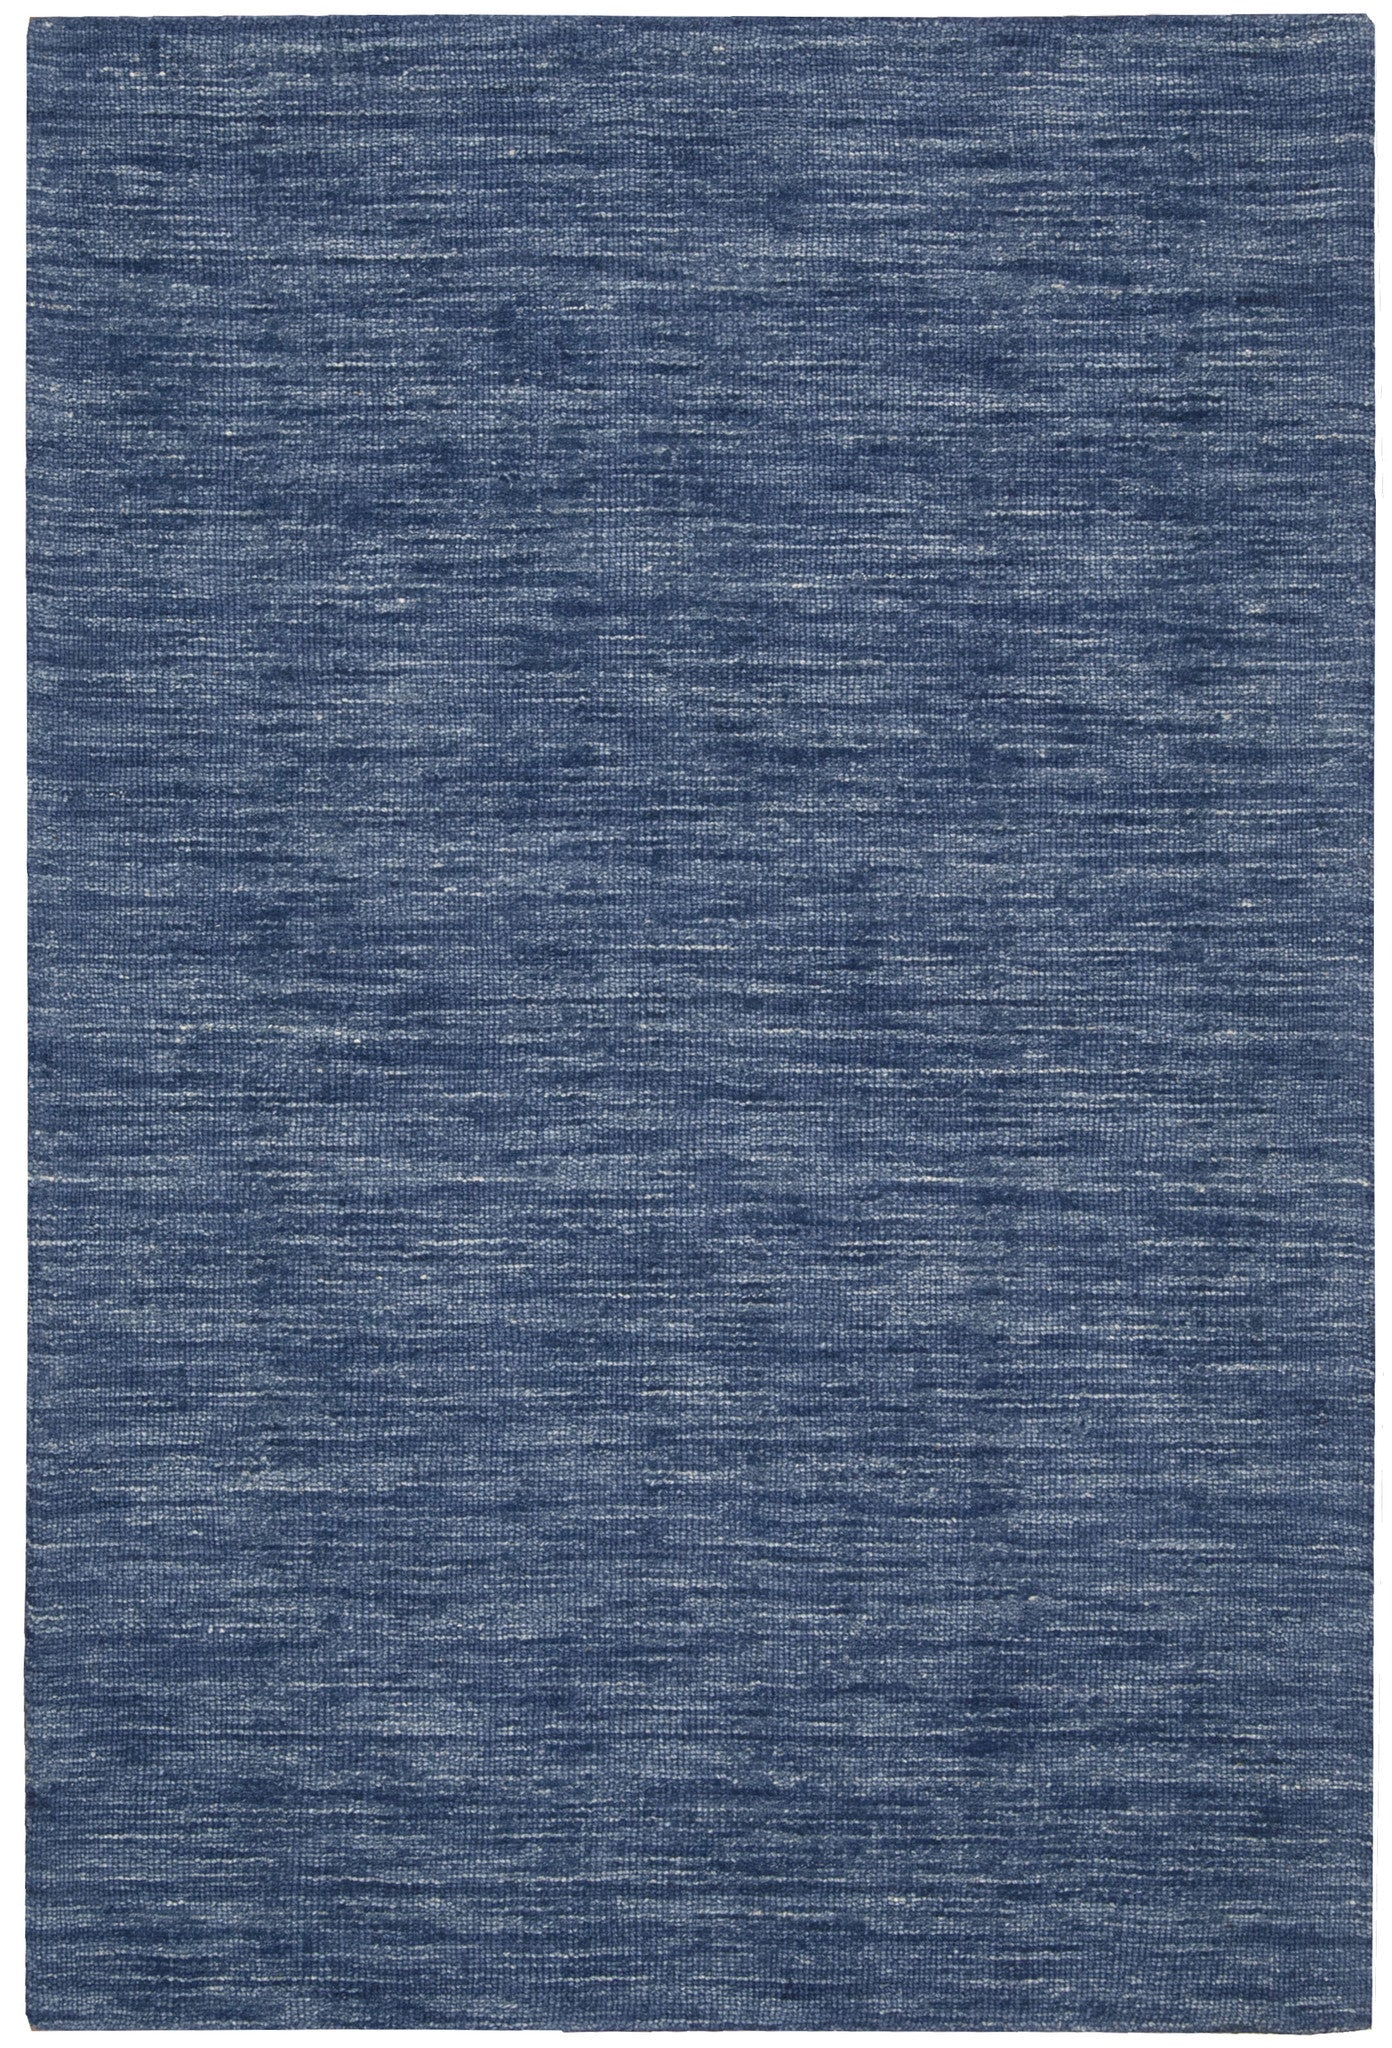 Waverly Grand Suite Ocean Area Rug By Nourison WGS01 OCEAN (Rectangle)